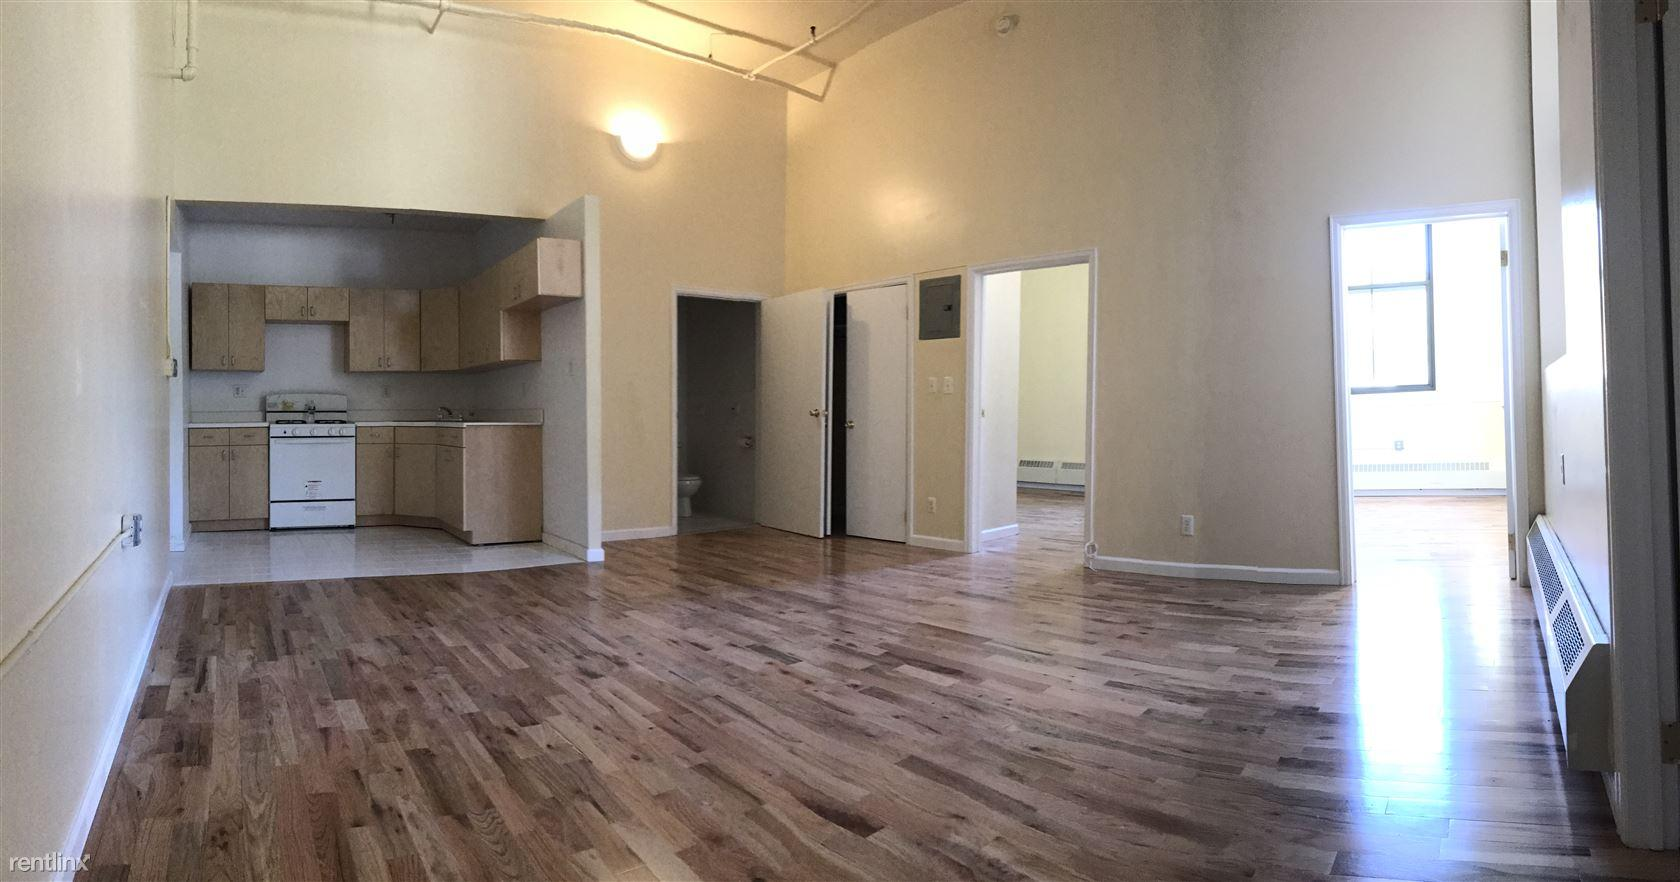 Studio Apartment For Rent Yonkers Ny